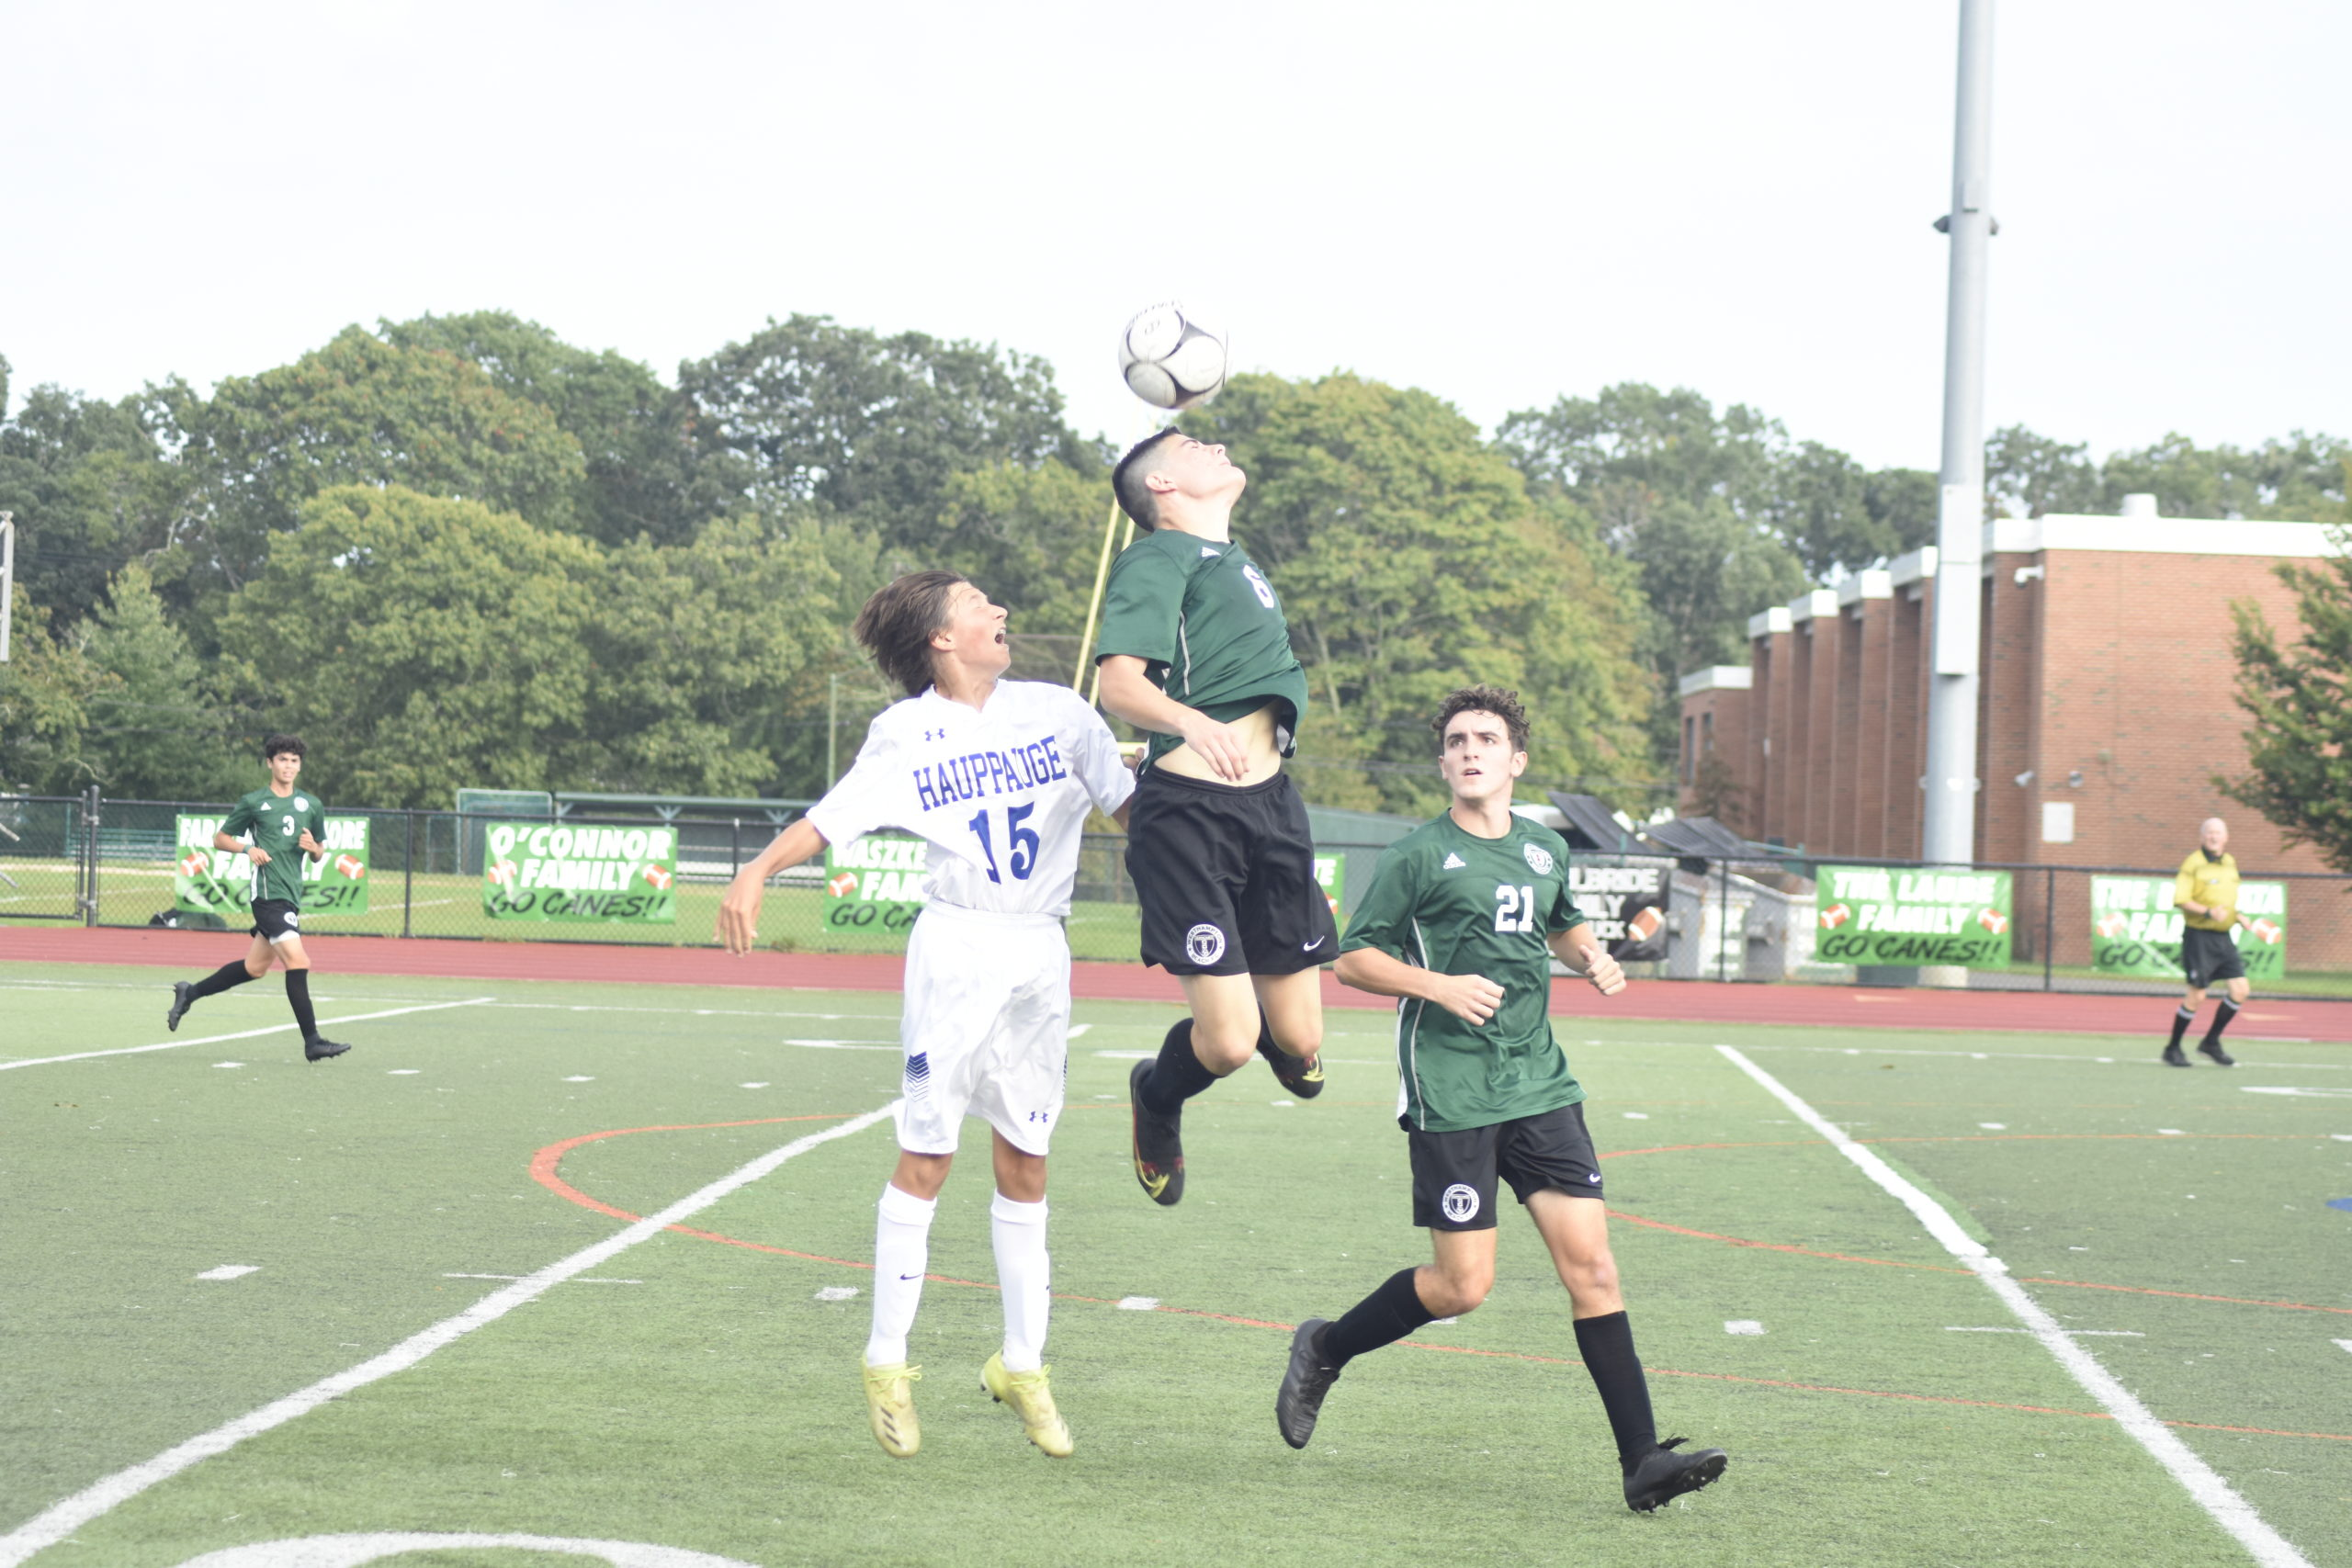 Westhampton Beach sophomore Montgomery Hahn beats a Hauppauge player to the ball in the air.